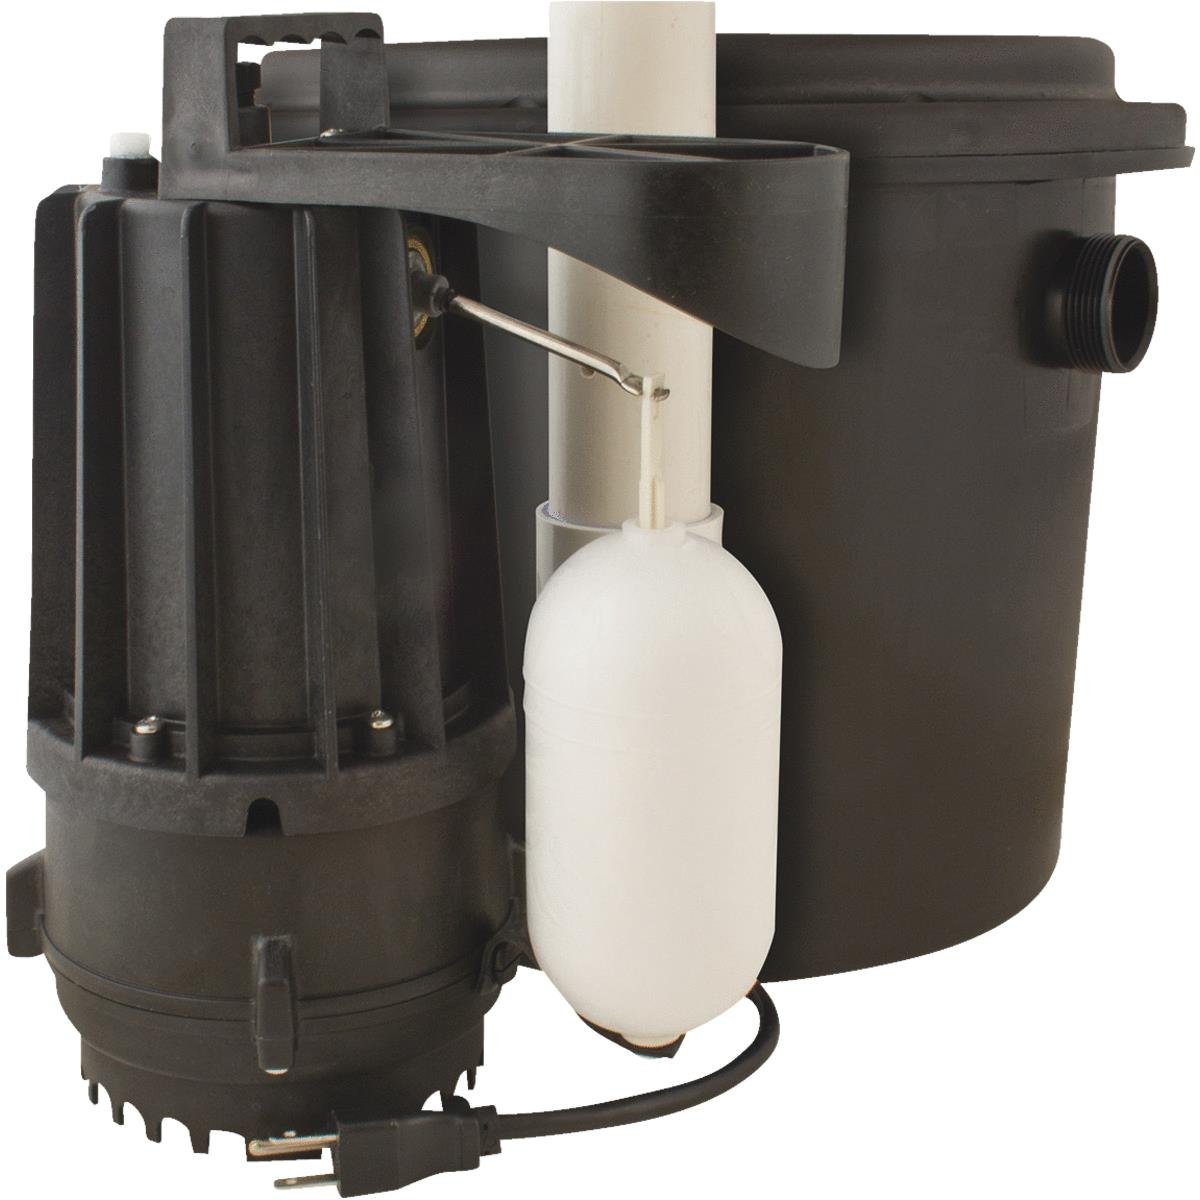 Star S1104 0.3 HP Drain Pump System Ideal for Wet Bars, Sinks, Water Softeners and More by Star